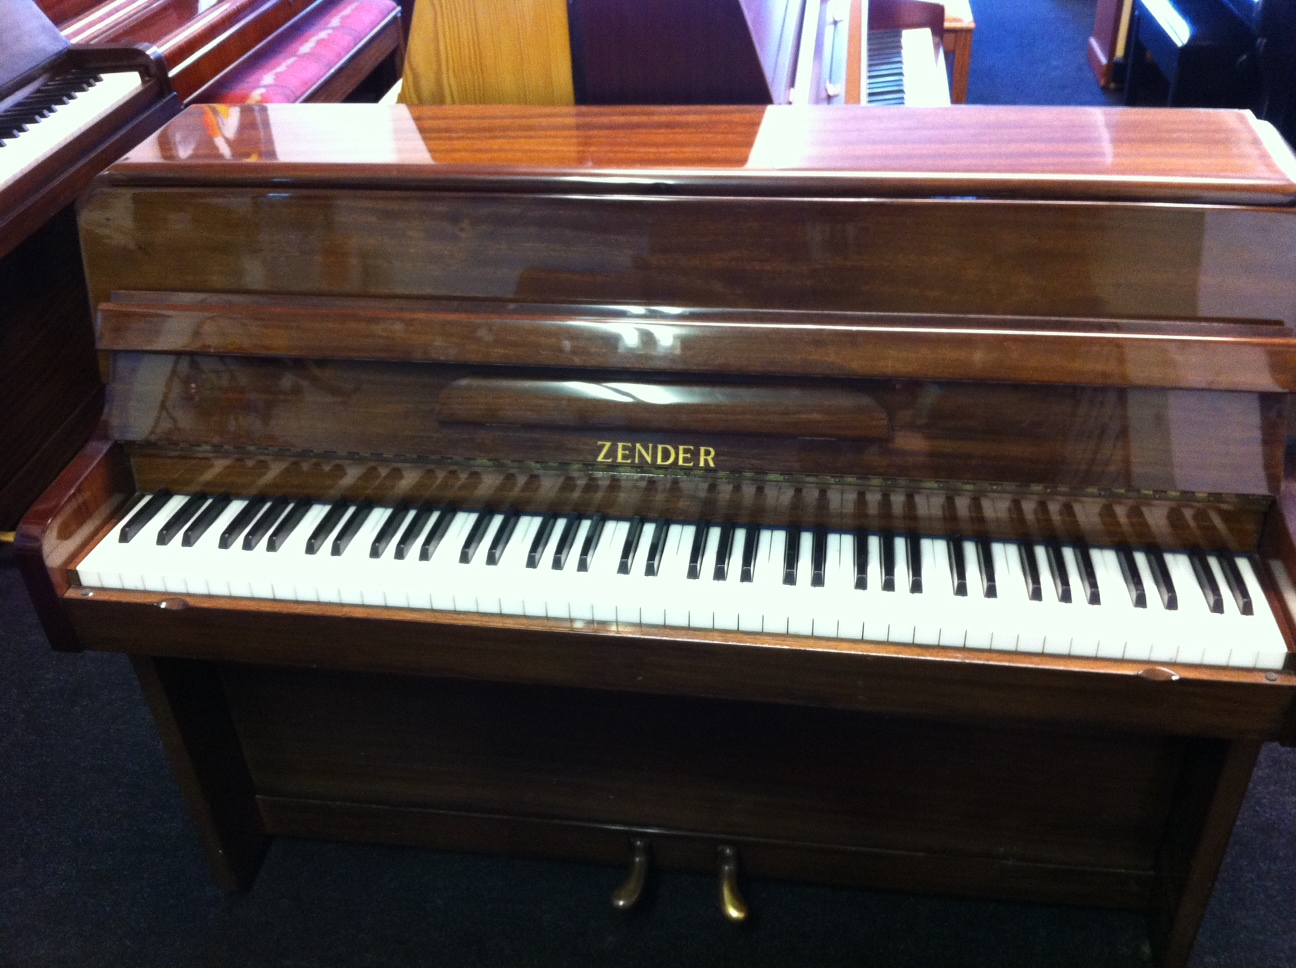 Zender Piano polished walnut